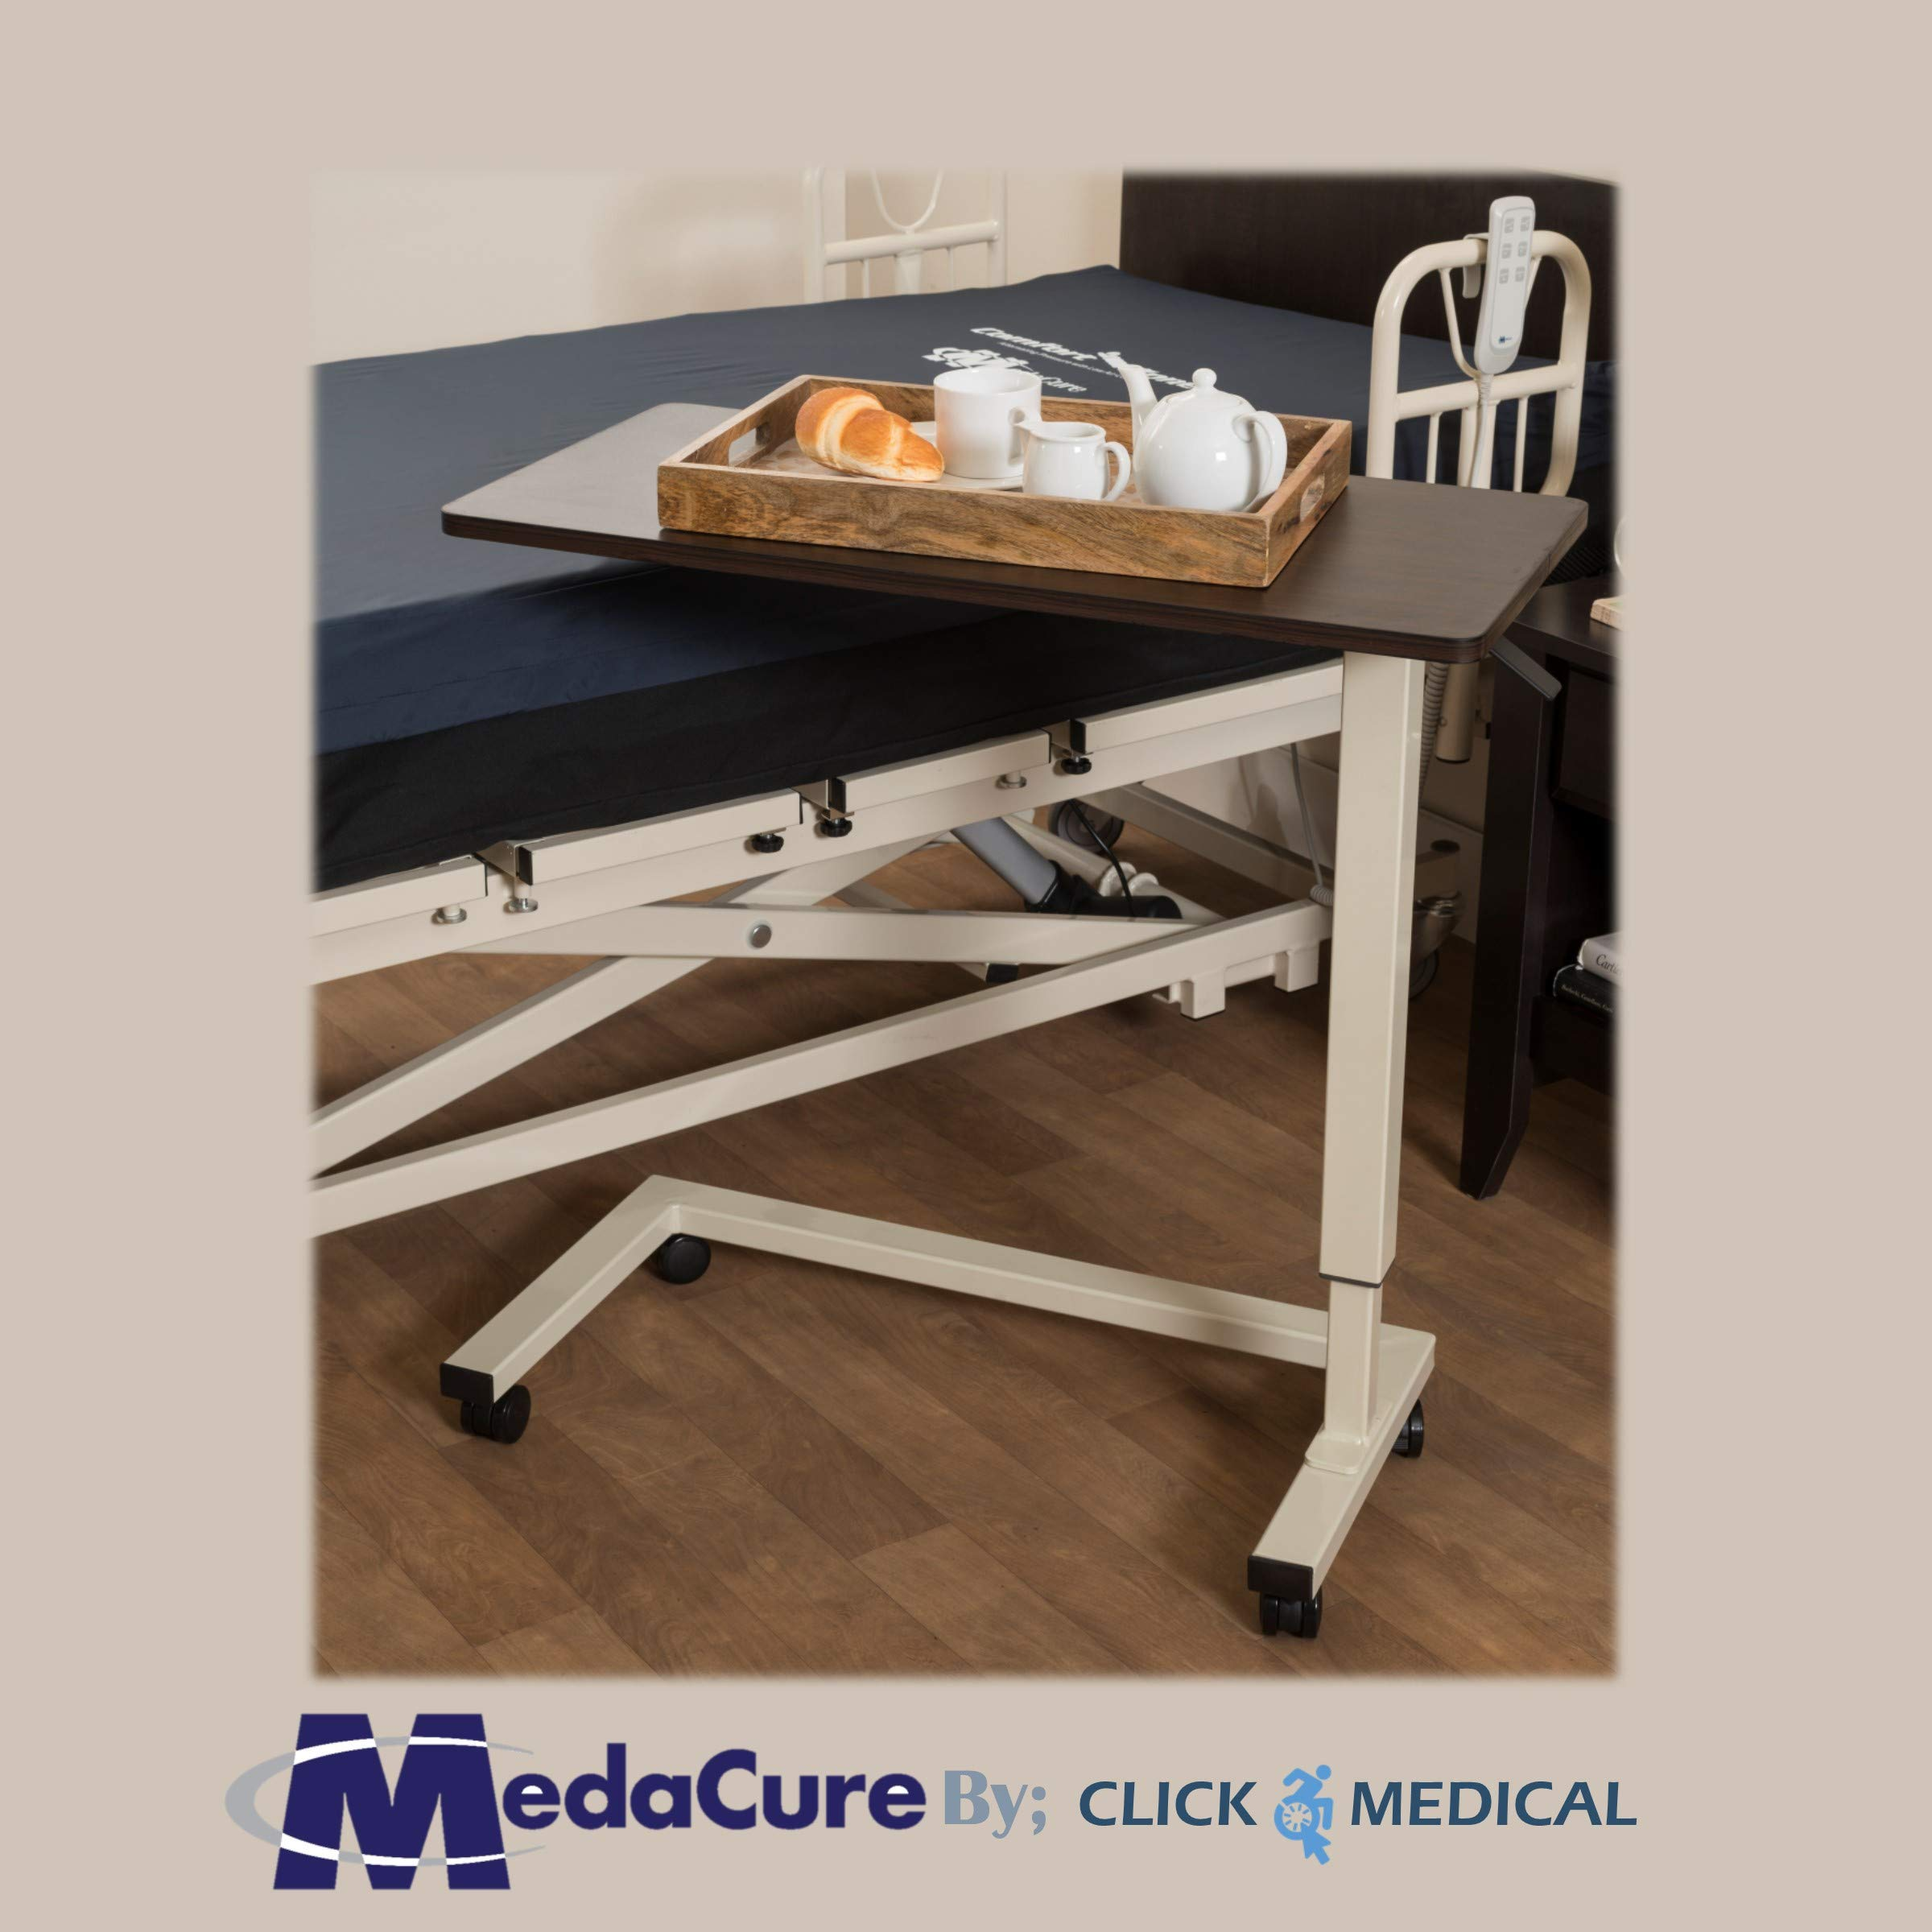 Medical Height Adjustable Overbed Table - Flame Resistant and Anti-Spill Rim - Heavy Duty Steel Frame and Swivel Locking Casters for Home, Hospital,Laptop, and Breakfast– 50lb Weight Capacity. (Oak) by Medacure (Image #6)